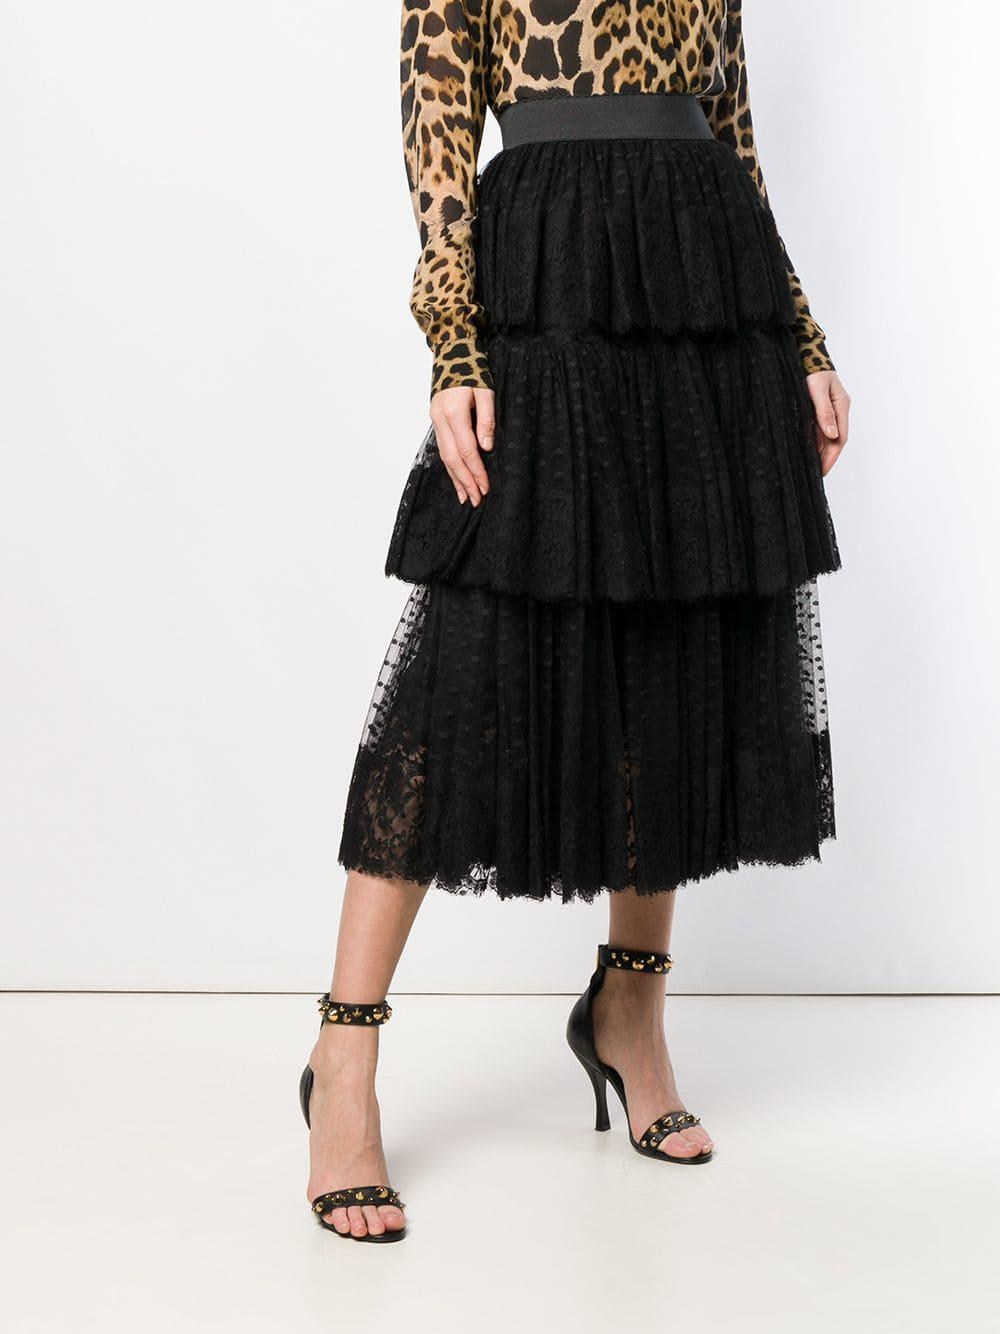 8240ed3c4 Dolce & Gabbana - Black Pleated Layered Tulle Skirt - Lyst. View fullscreen